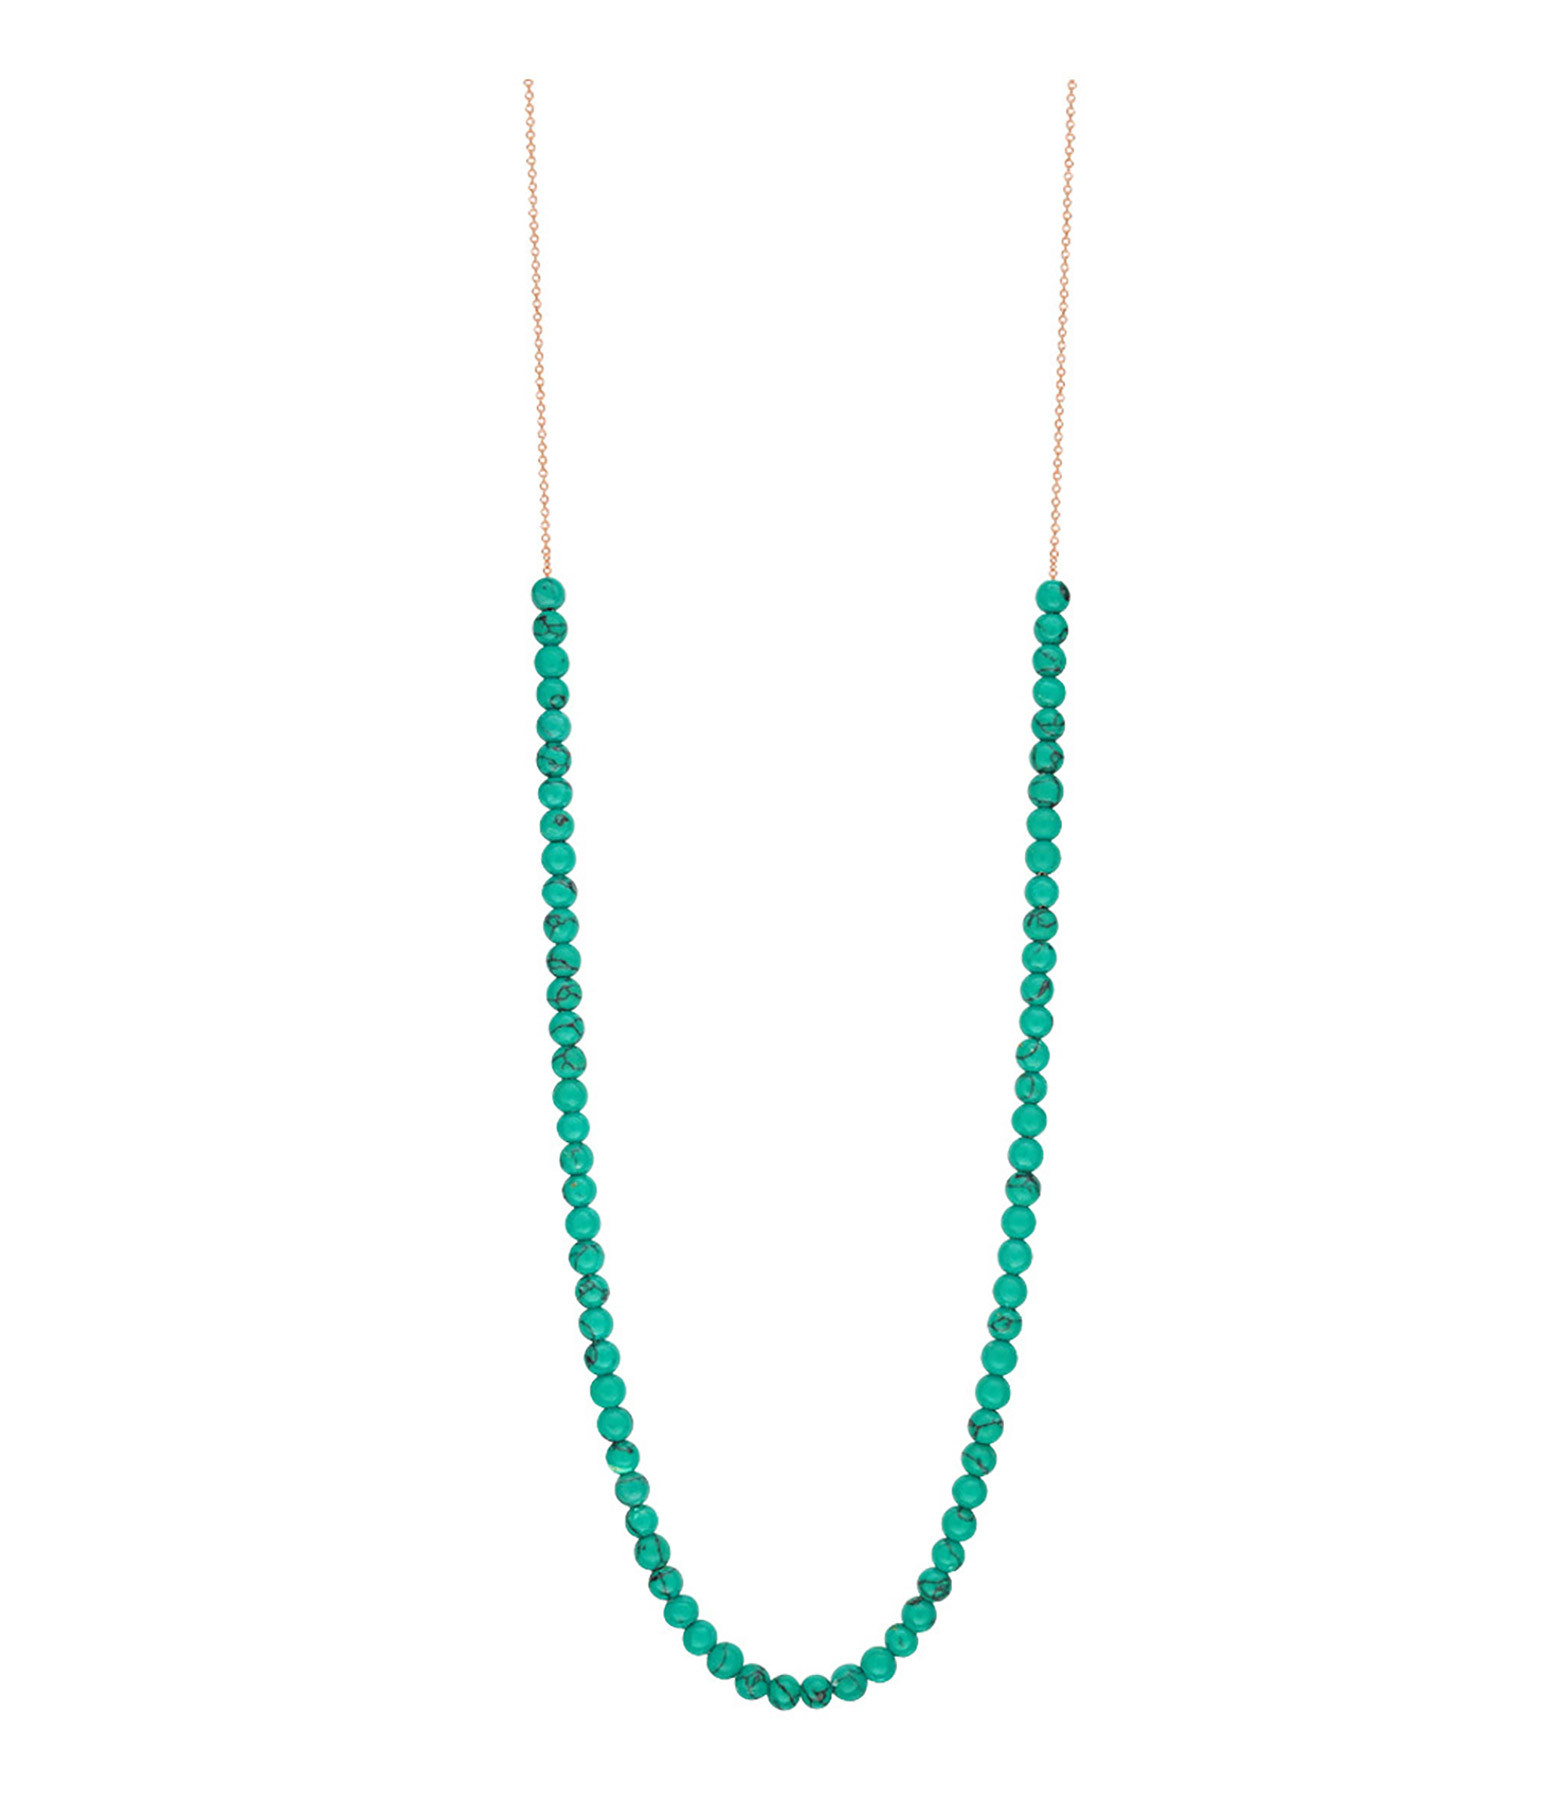 GINETTE_NY - Collier Maria Boulier Turquoise